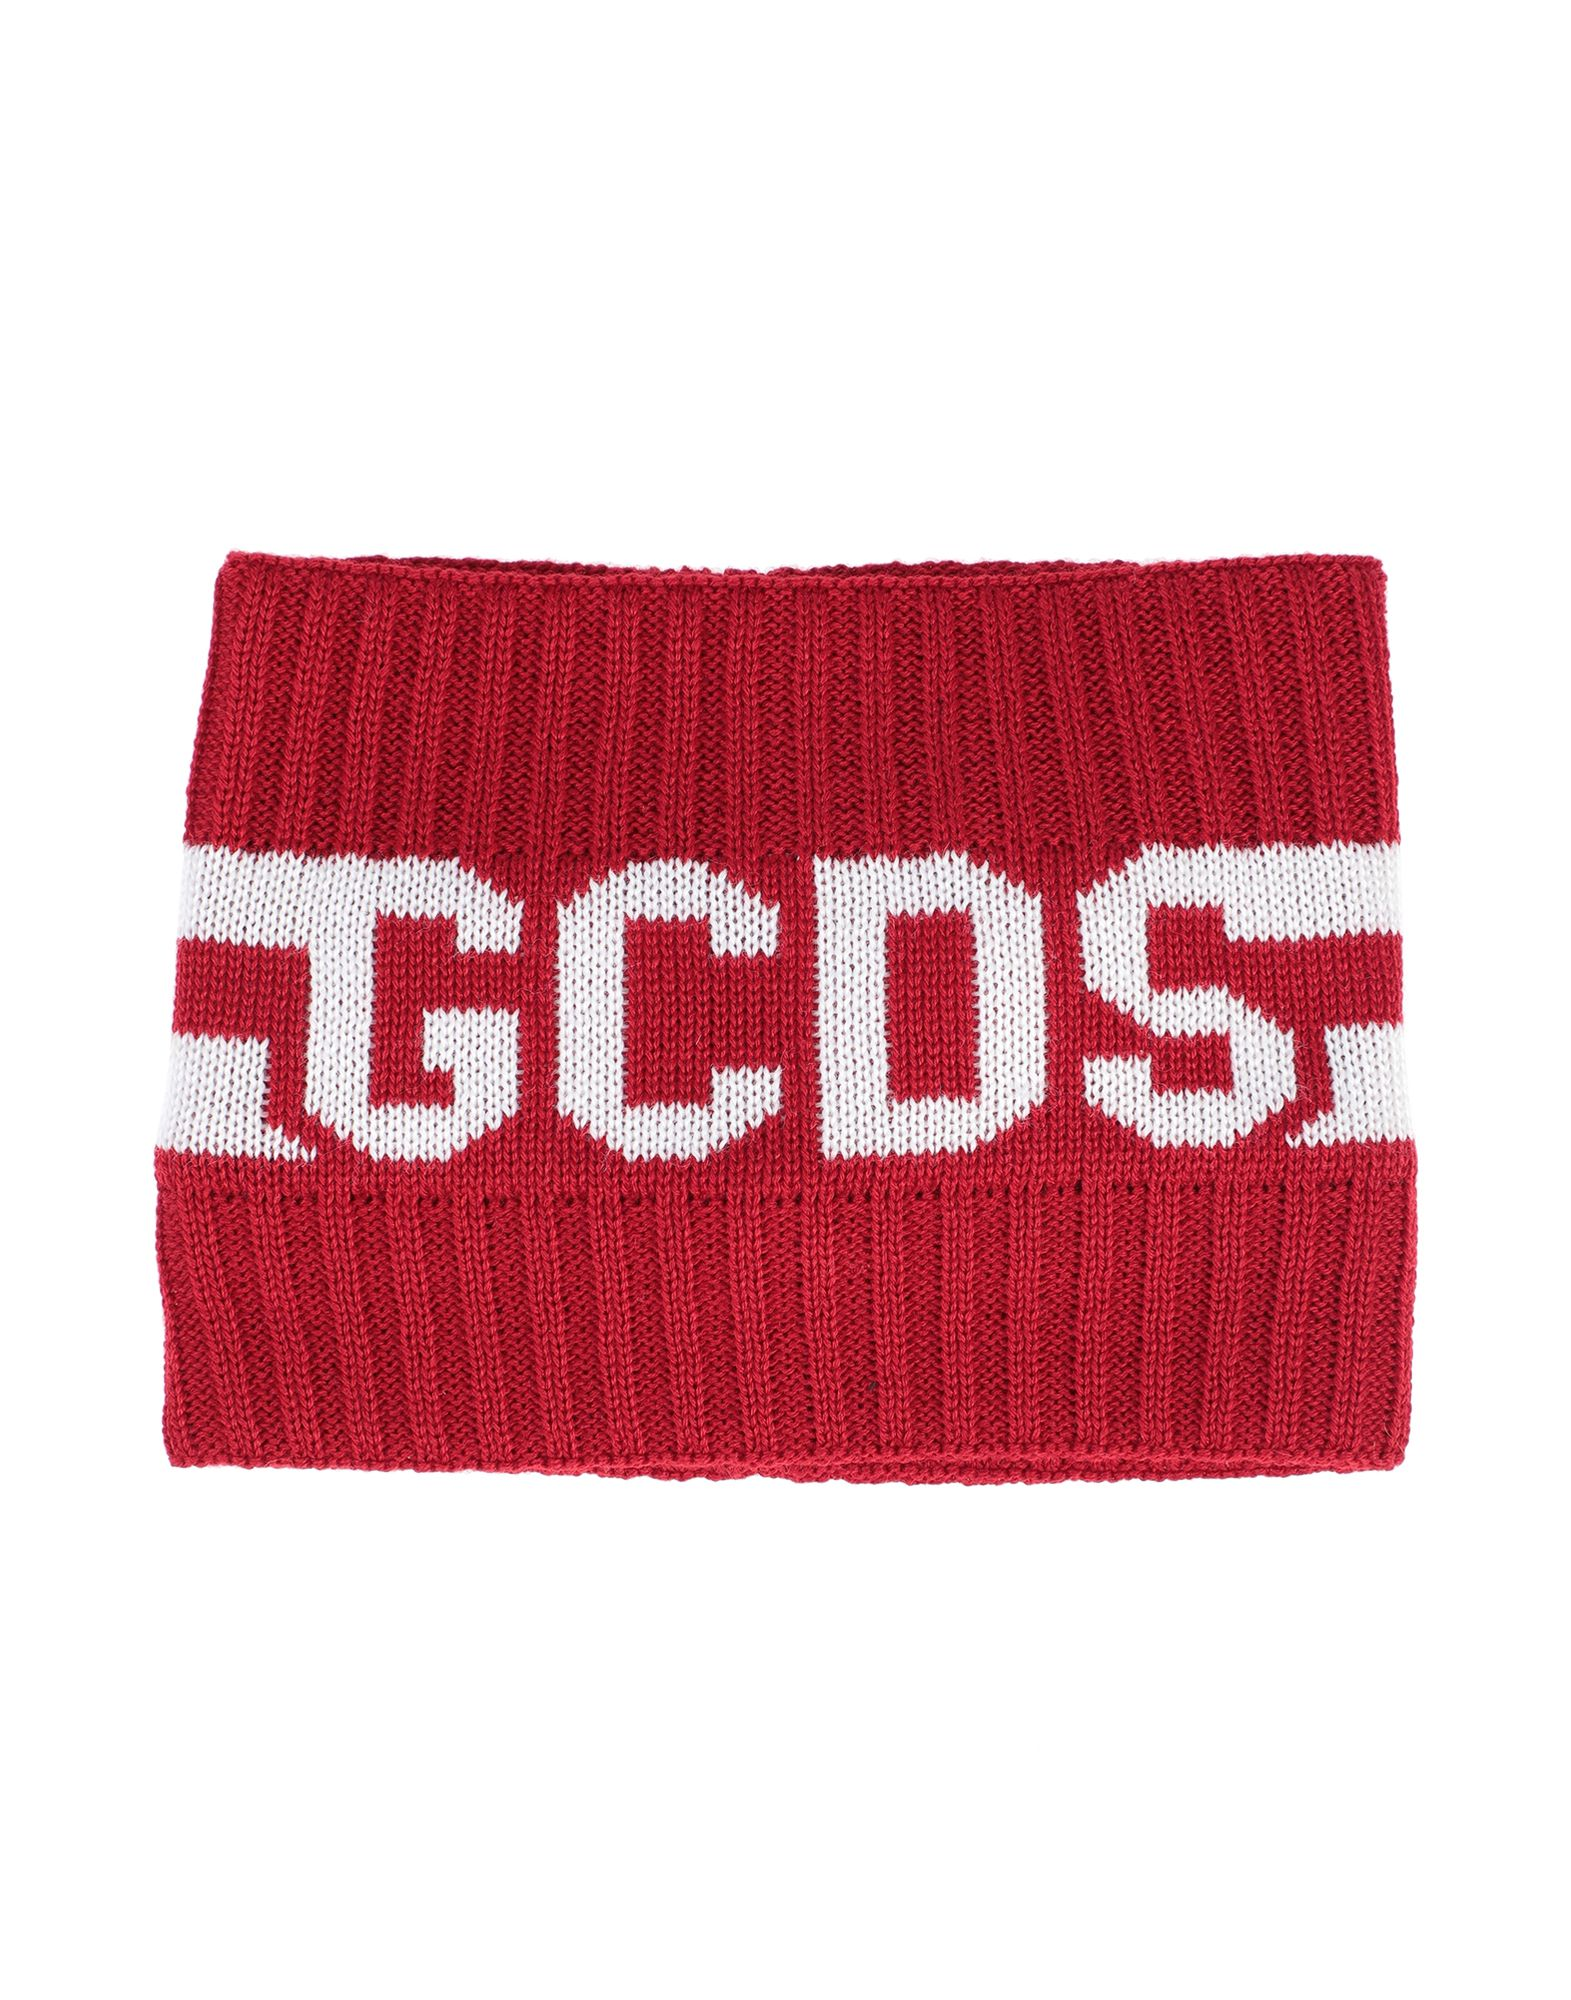 GCDS Hair accessories. knitted, logo, two-tone. 50% Wool, 50% Acrylic